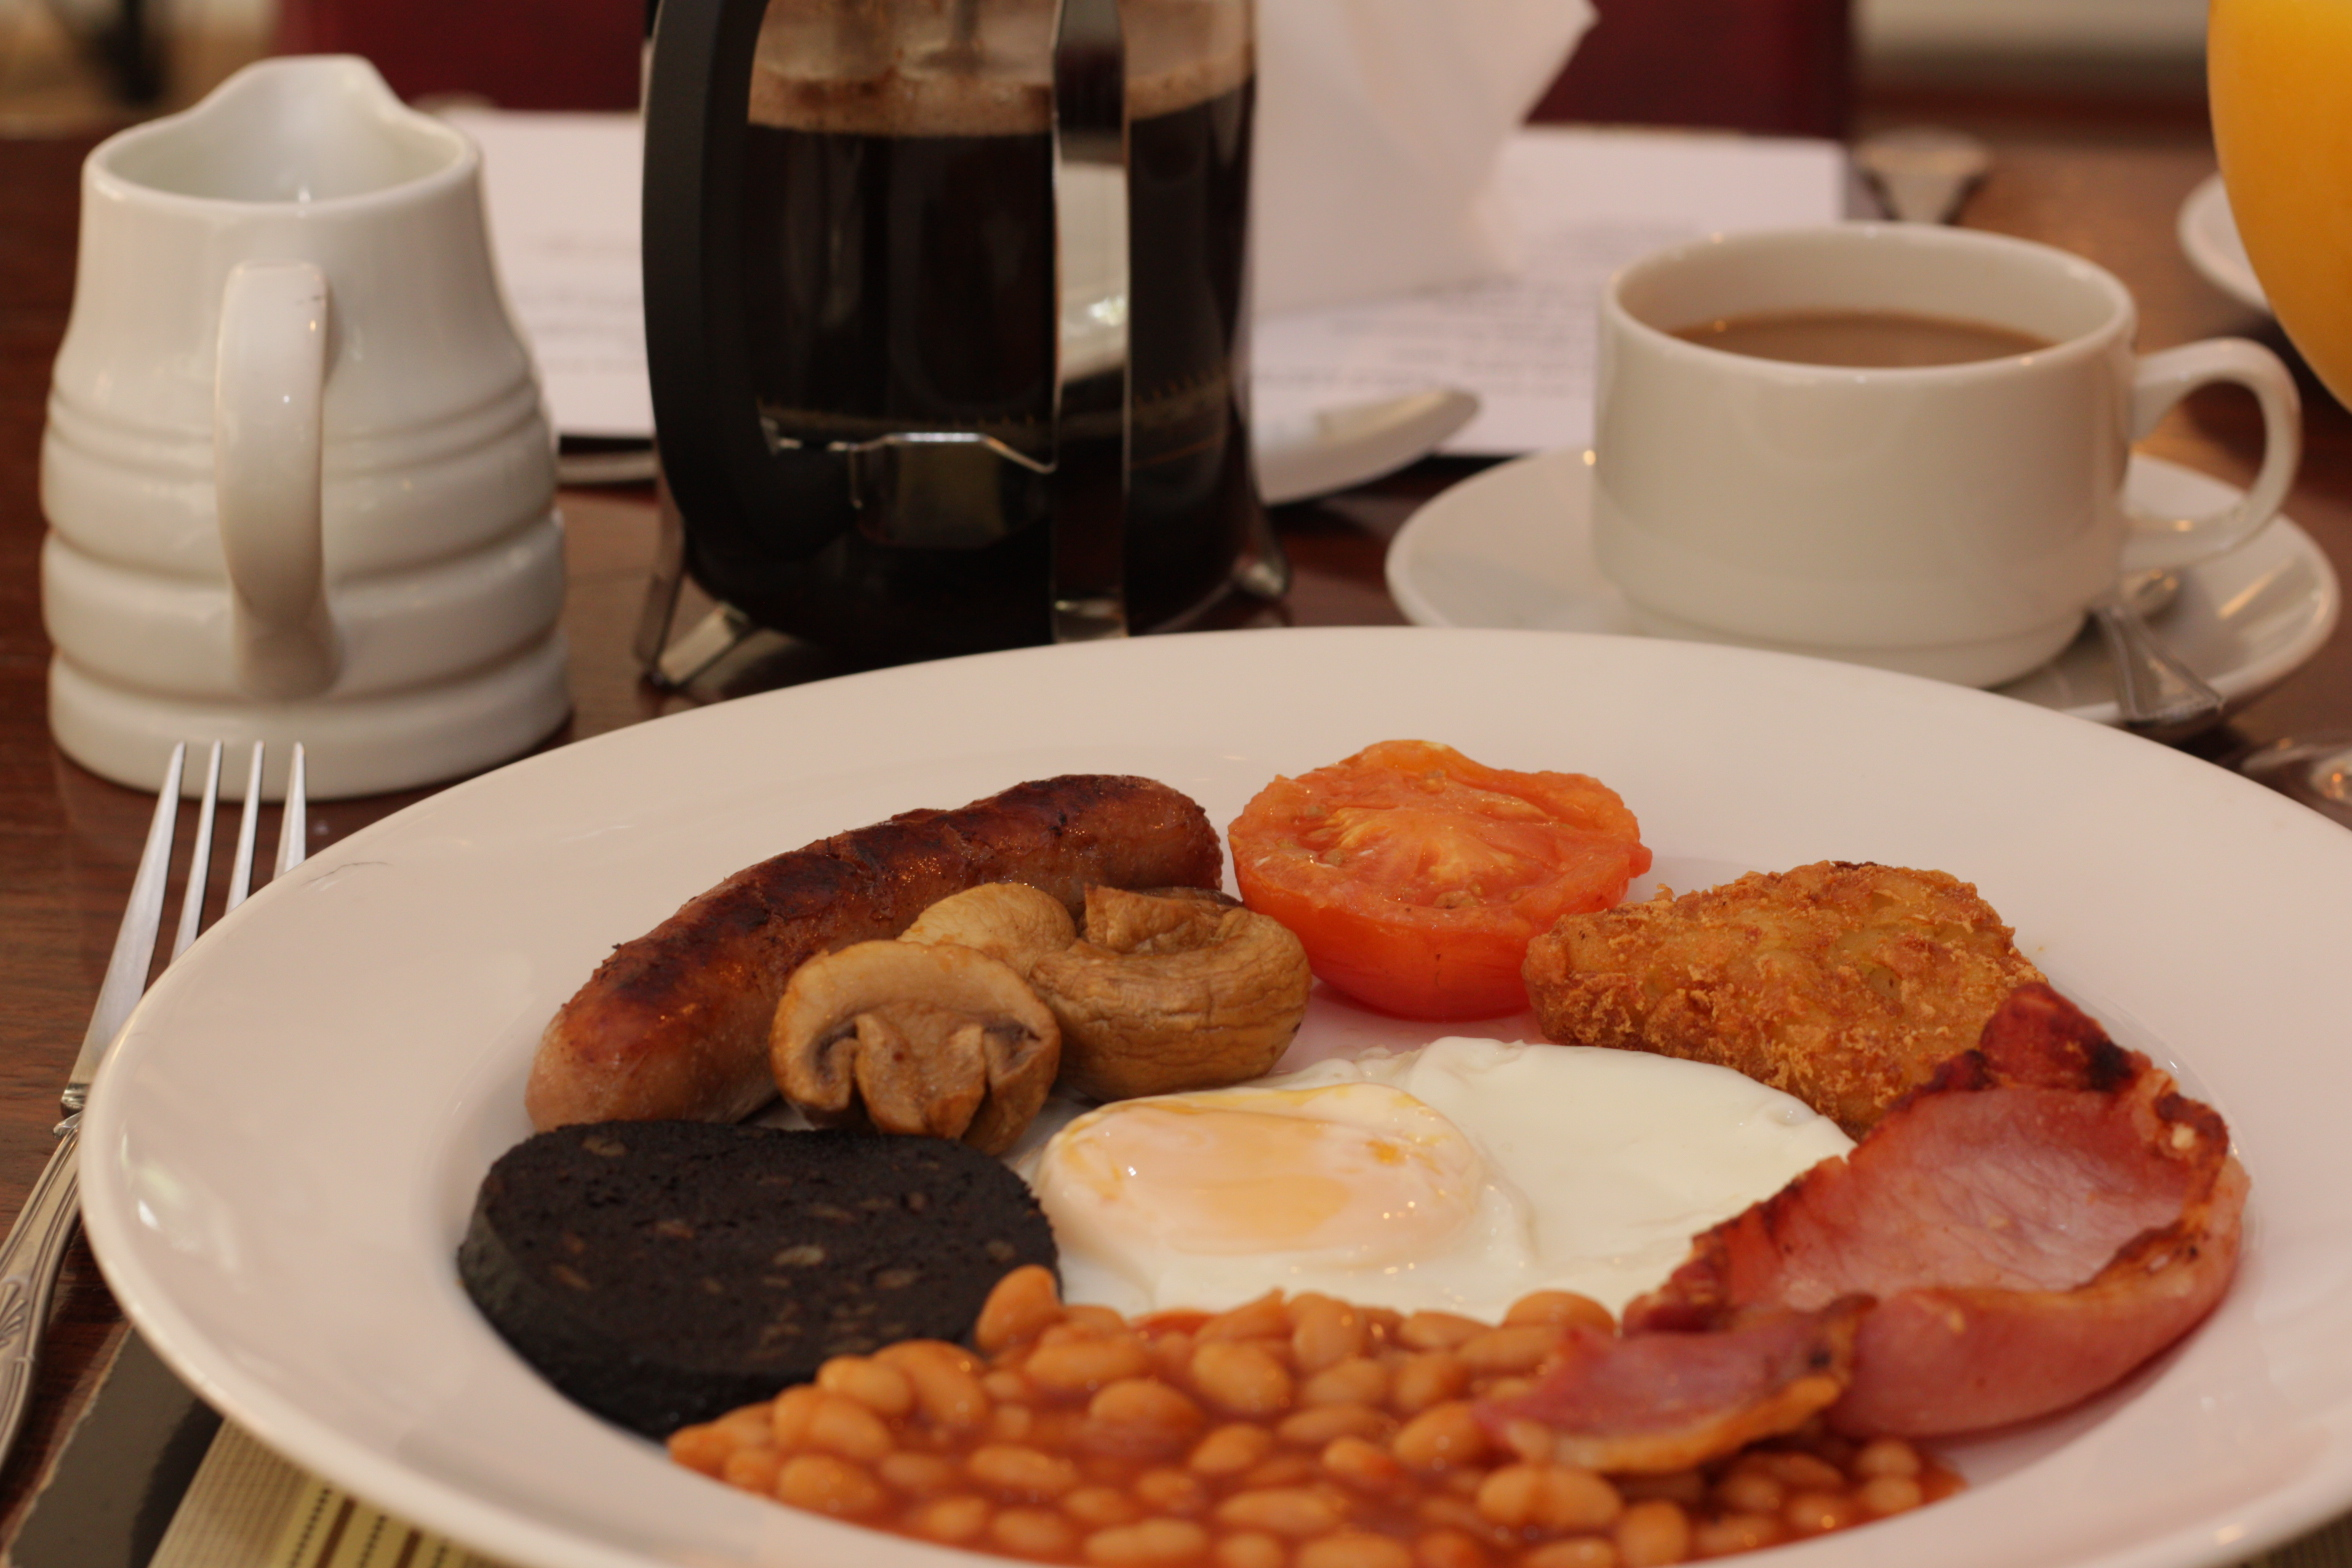 Nuneaton Hotel Breakfast